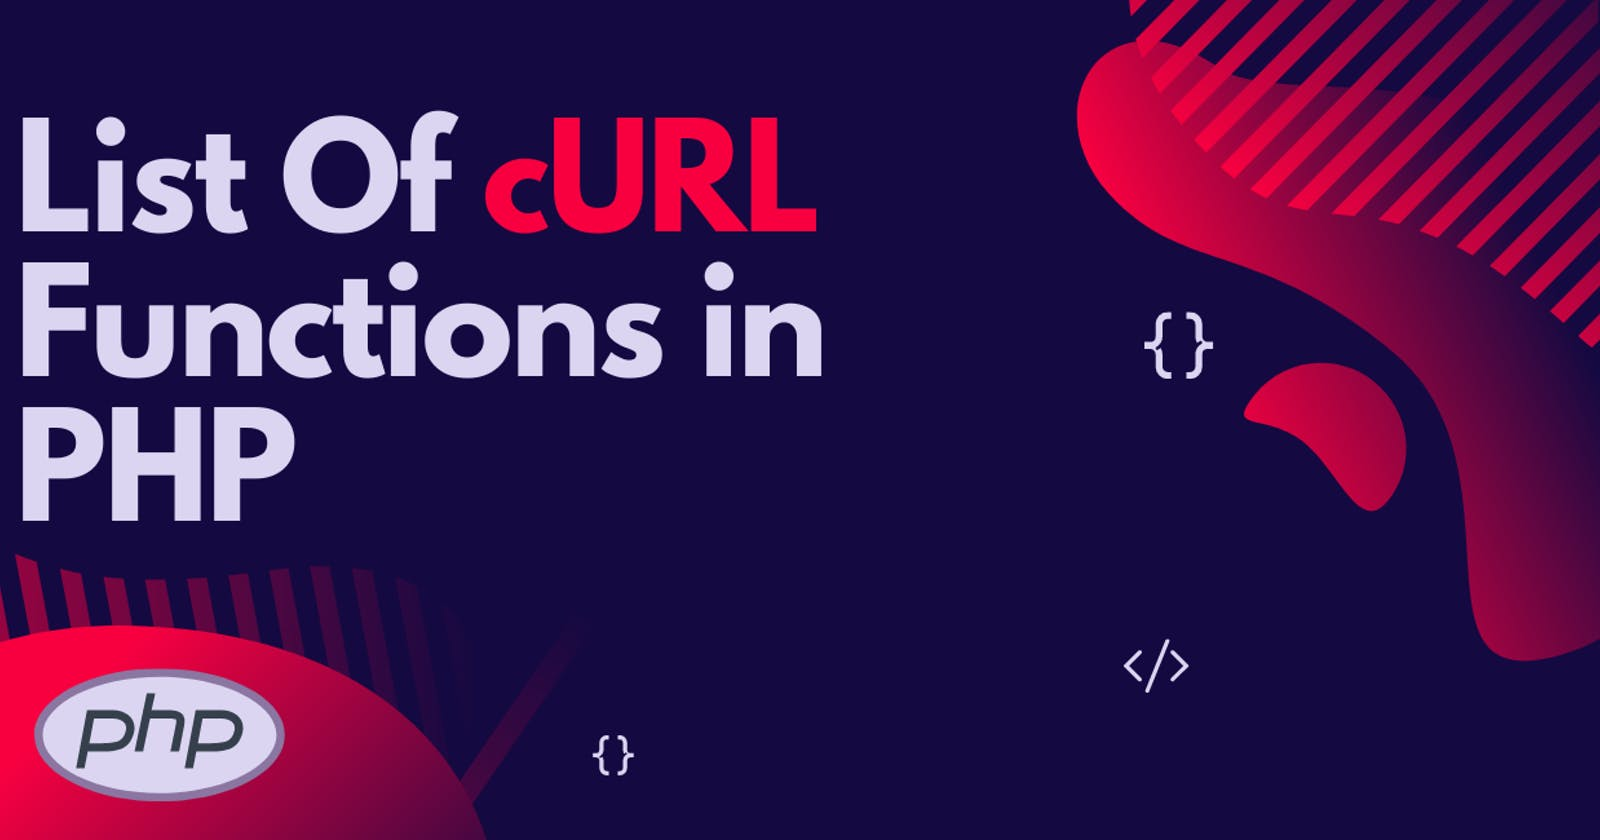 List Of cURL Functions in PHP